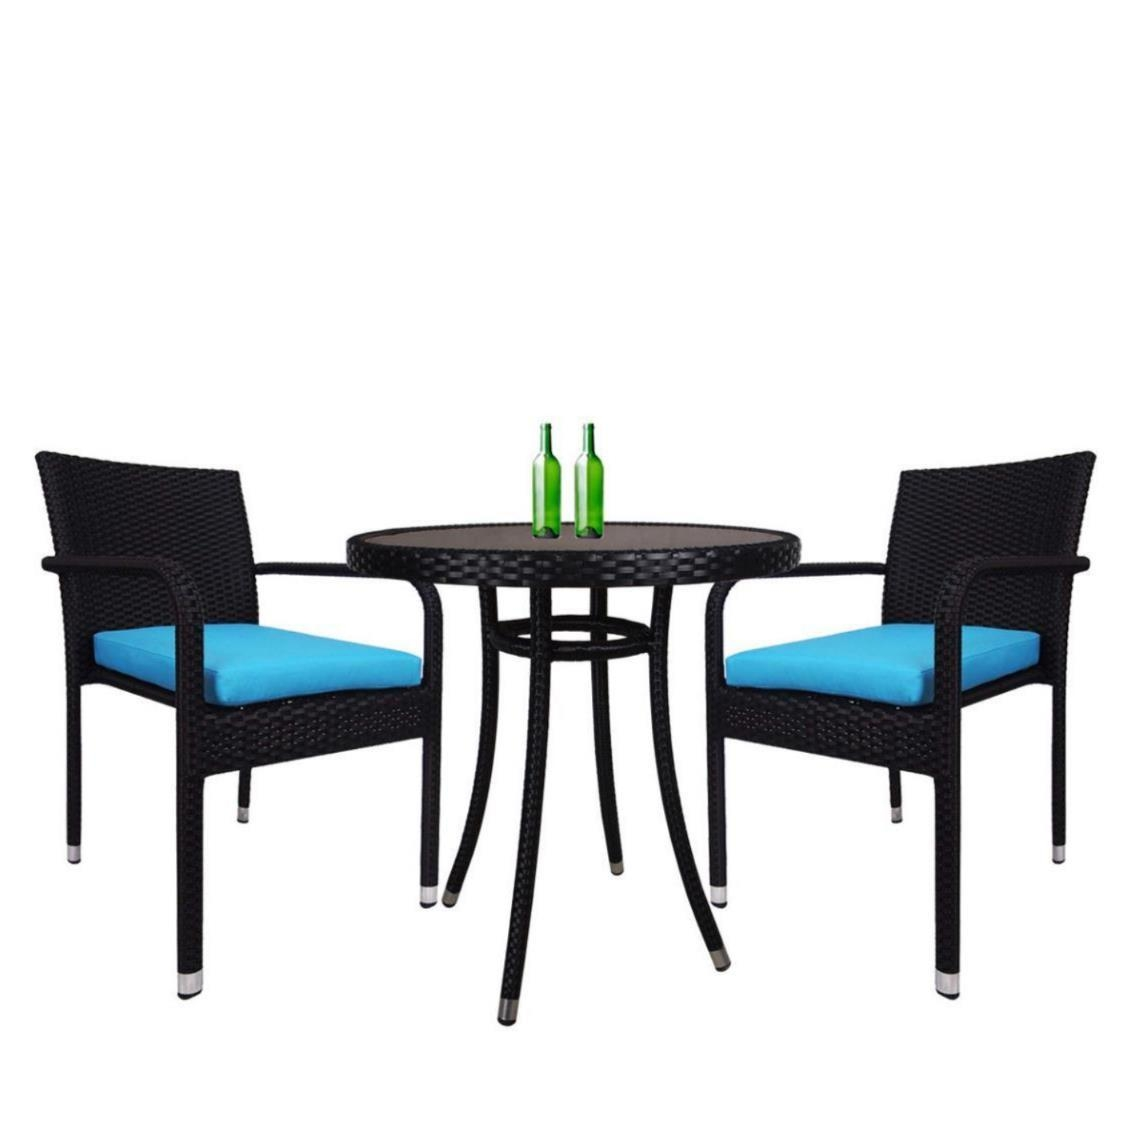 Balcony 2 Chair Bistro Set Blue Cushion